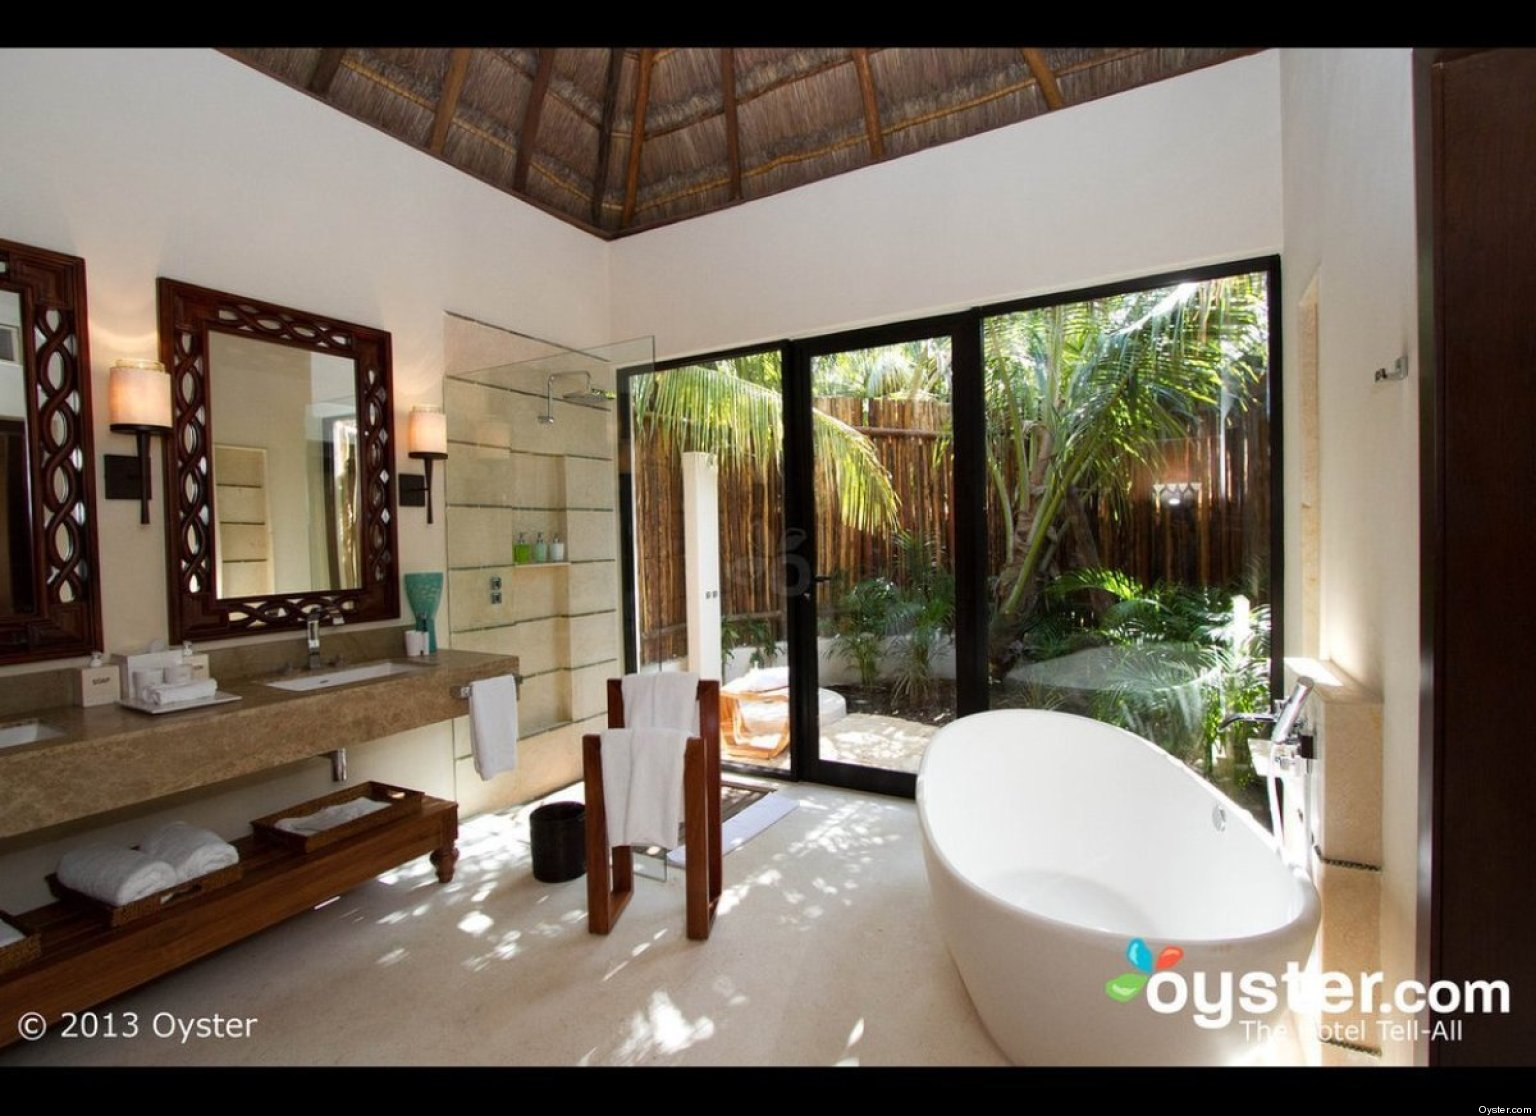 The sexiest hotel bathrooms in the caribbean photos oyster for Bathroom ideas in jamaica